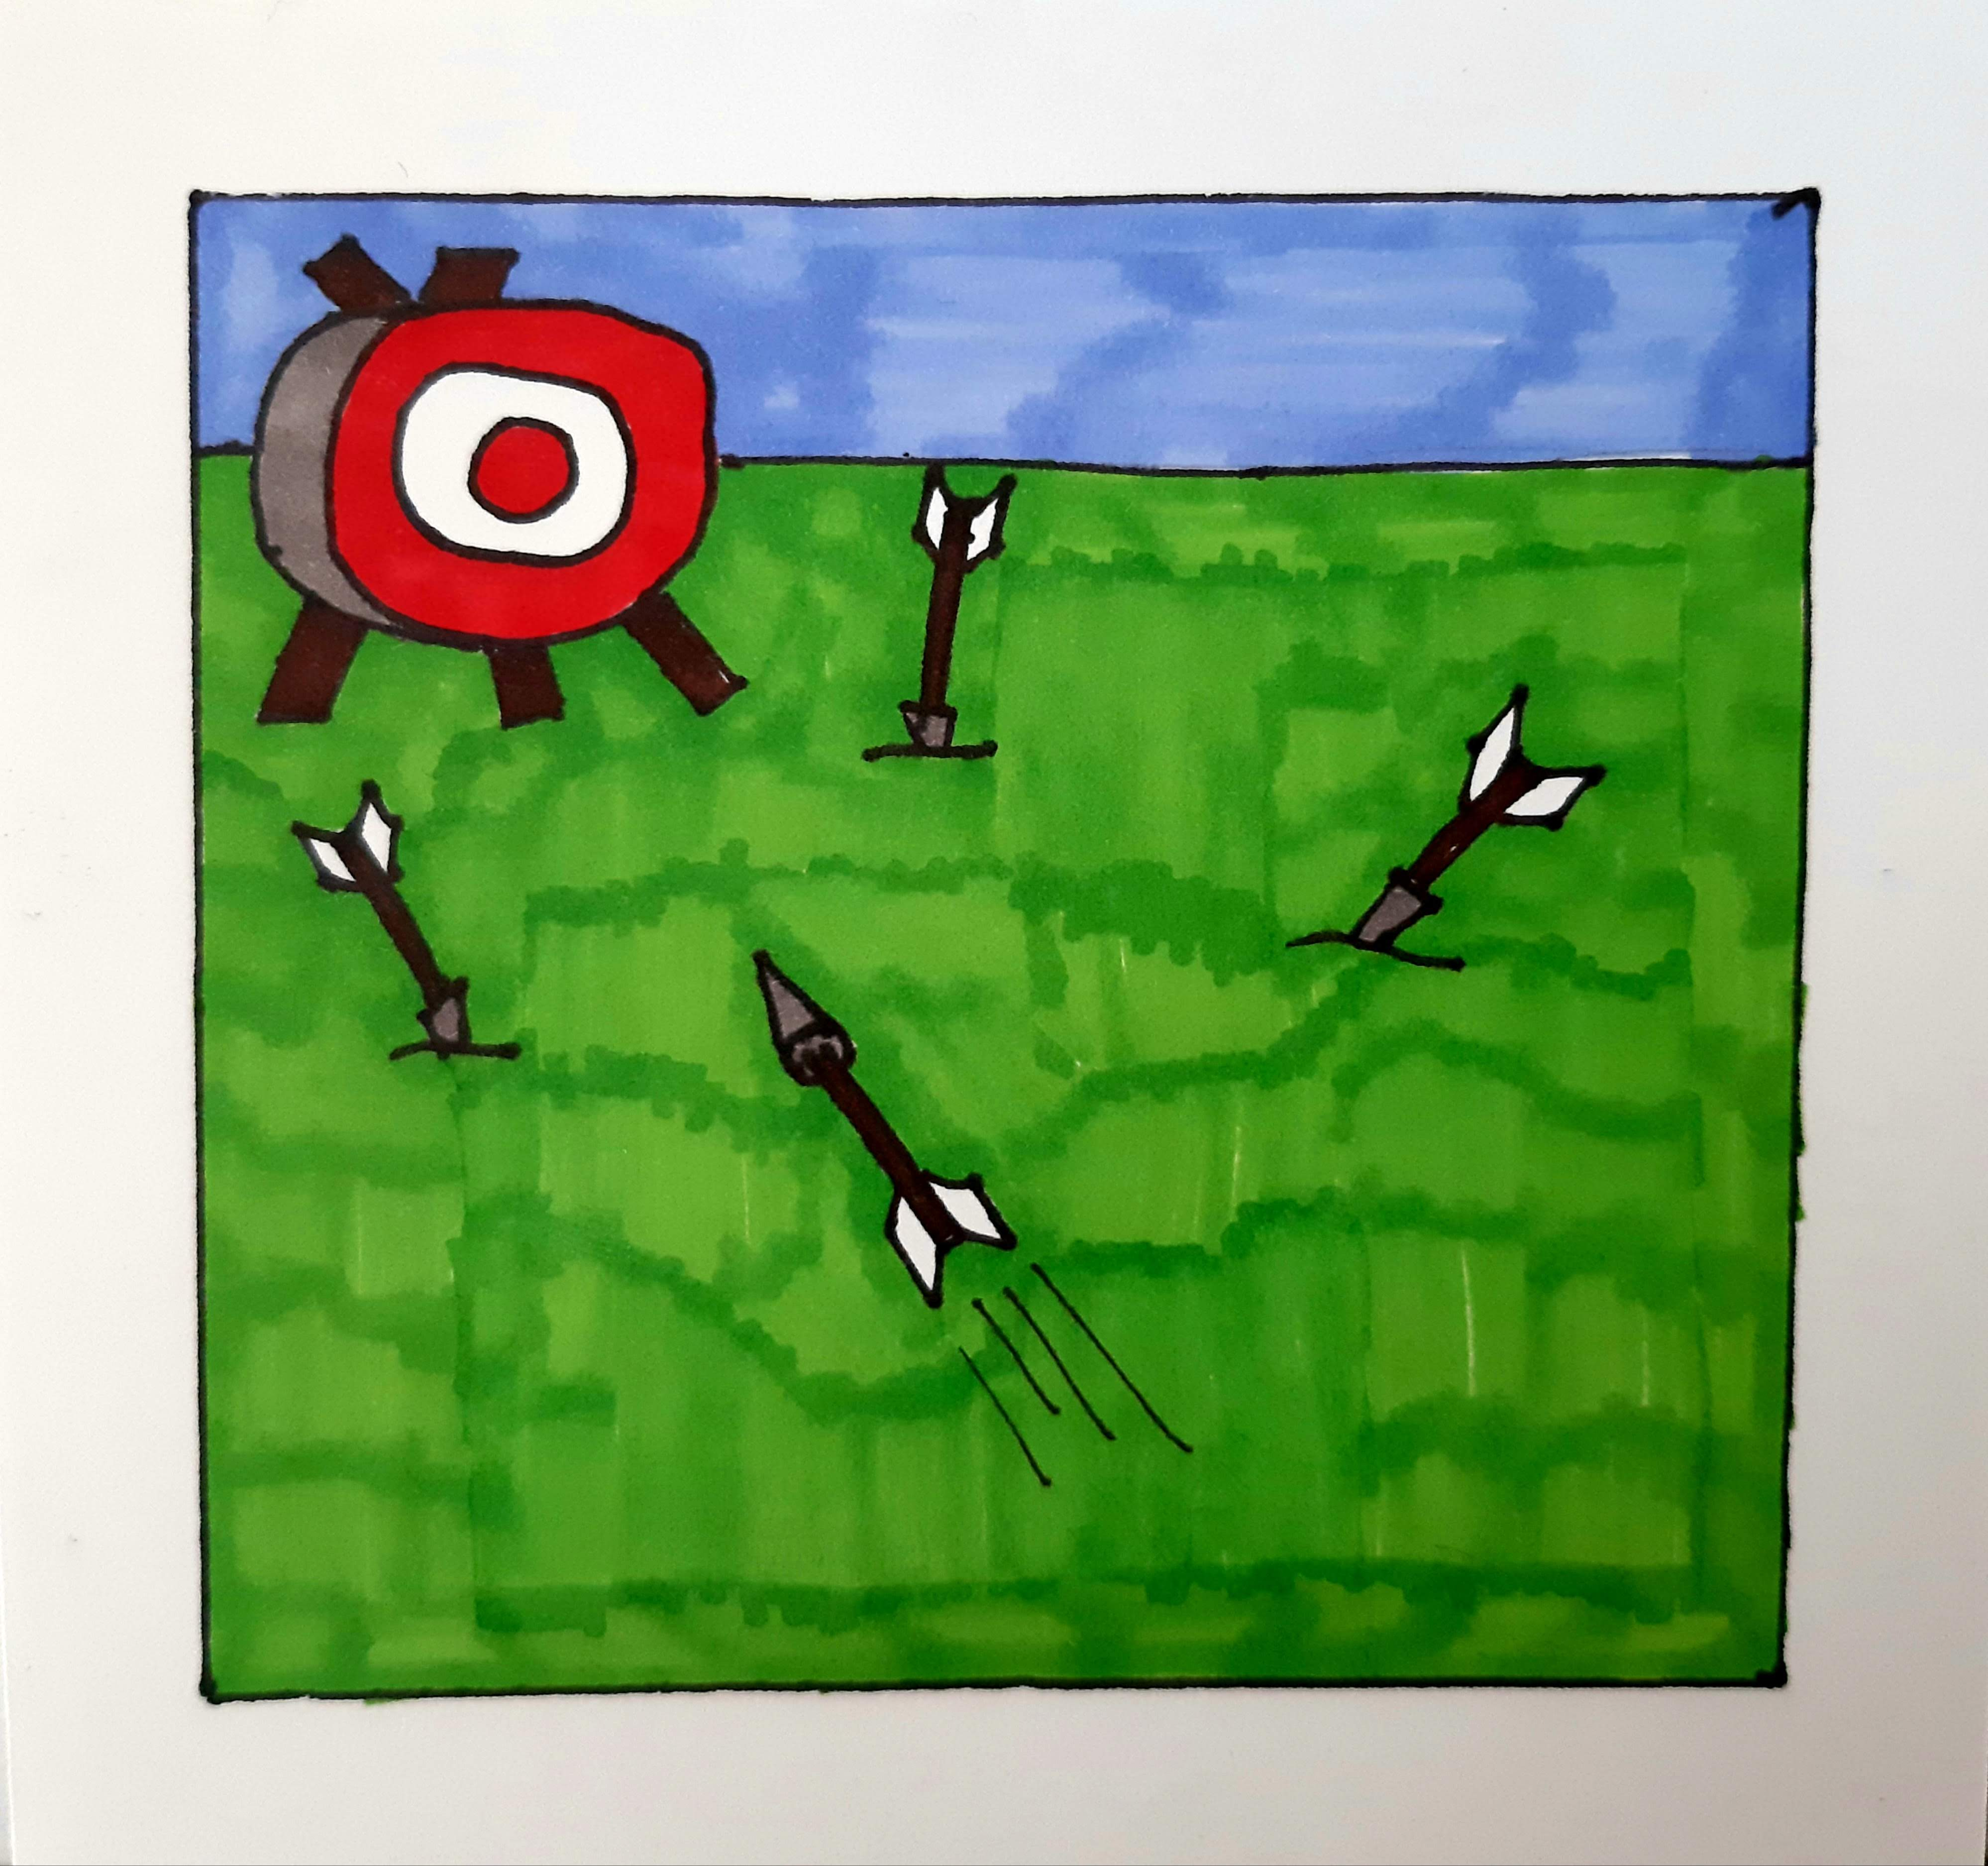 drawing of arrows hitting a target